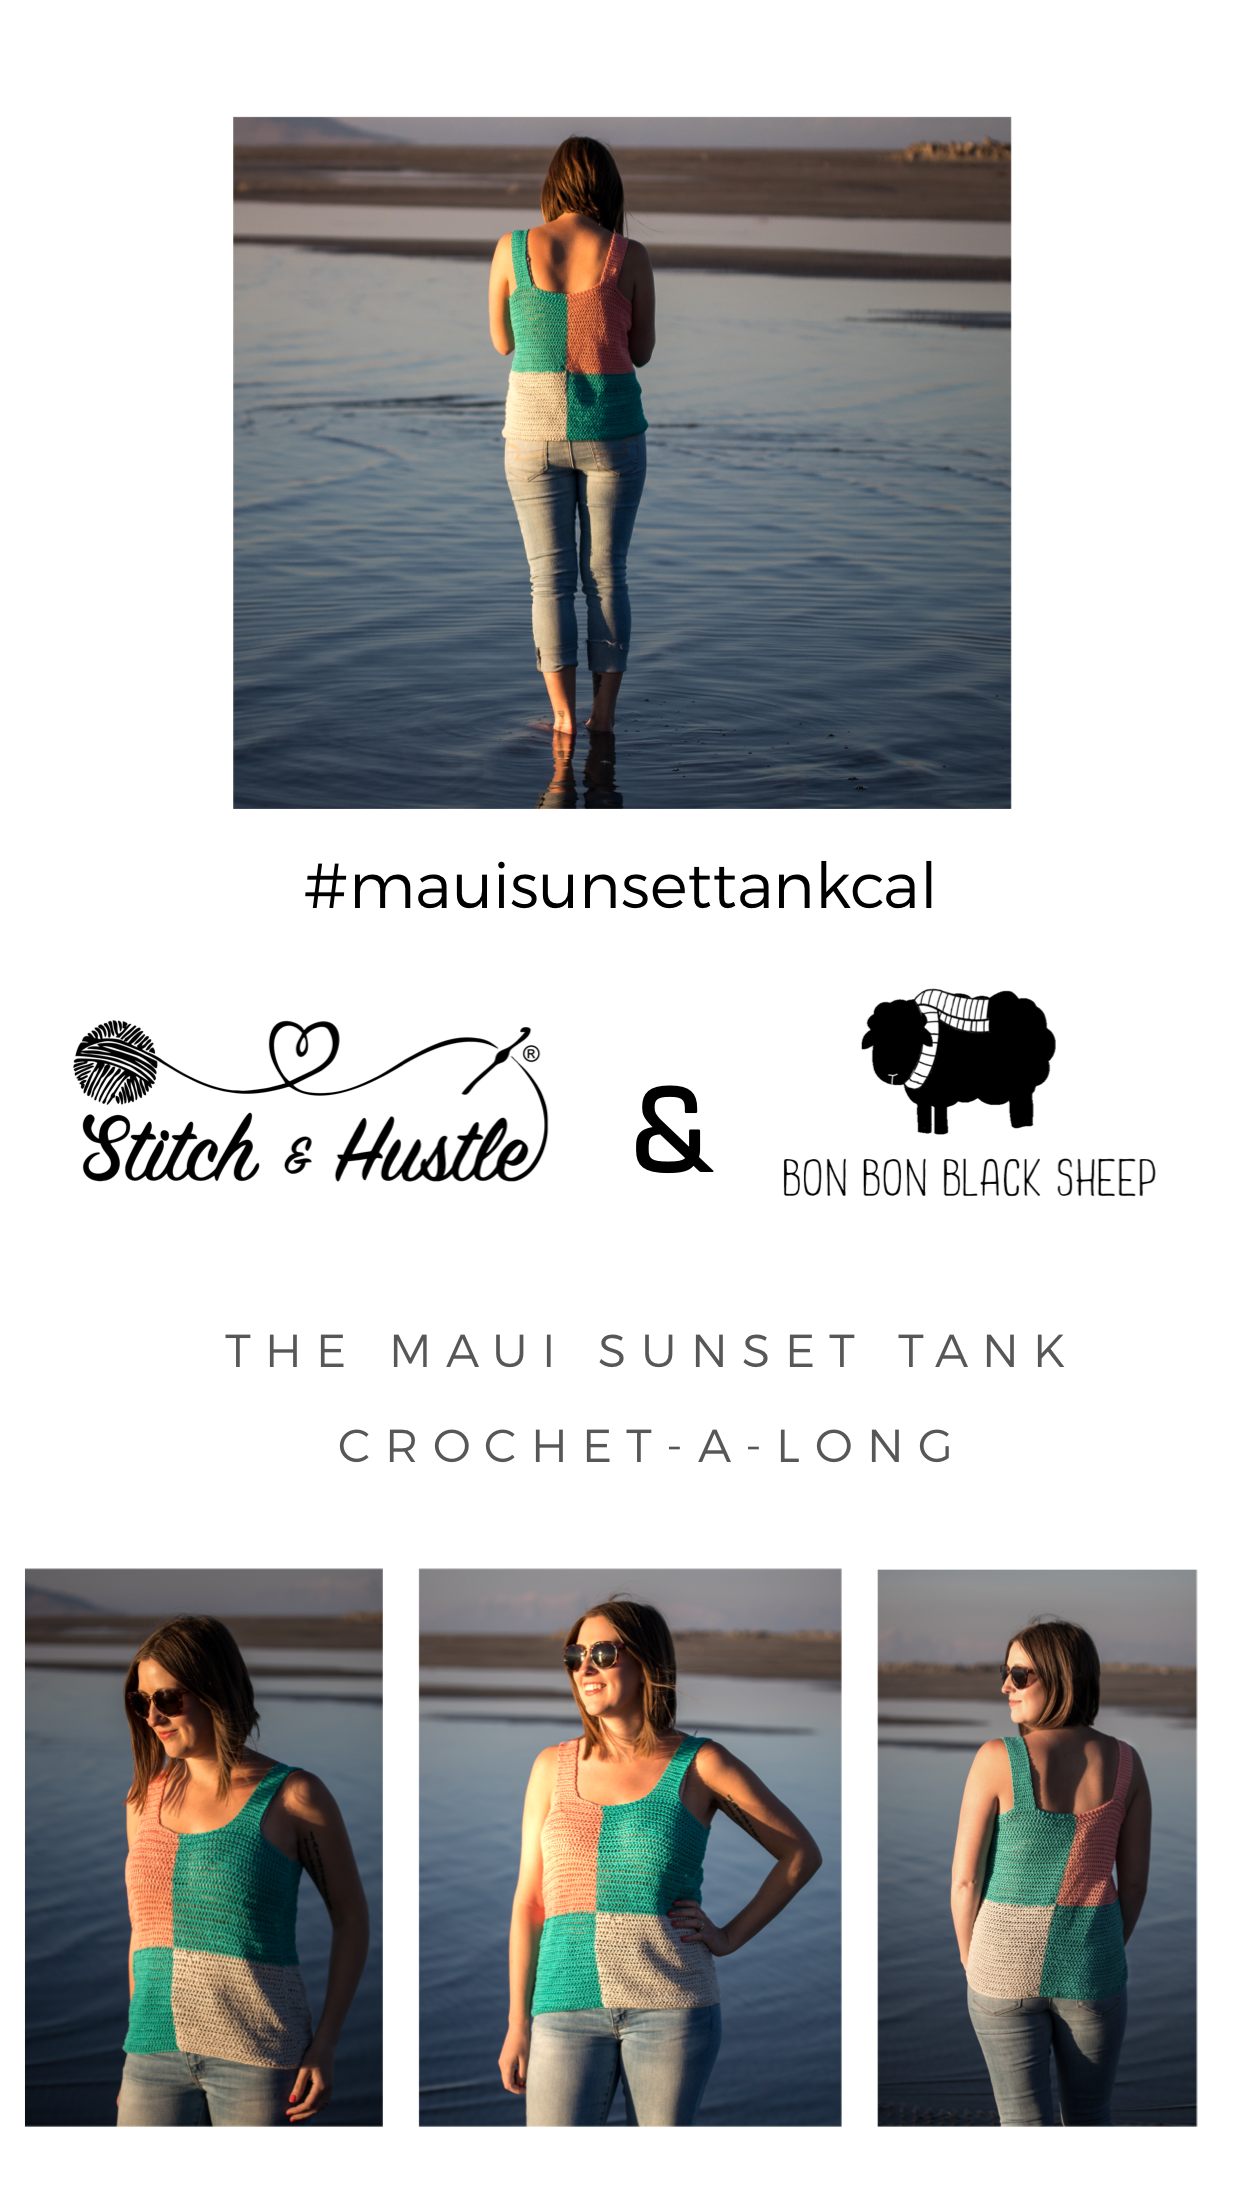 Mauisunsettankcal-2 copy.png